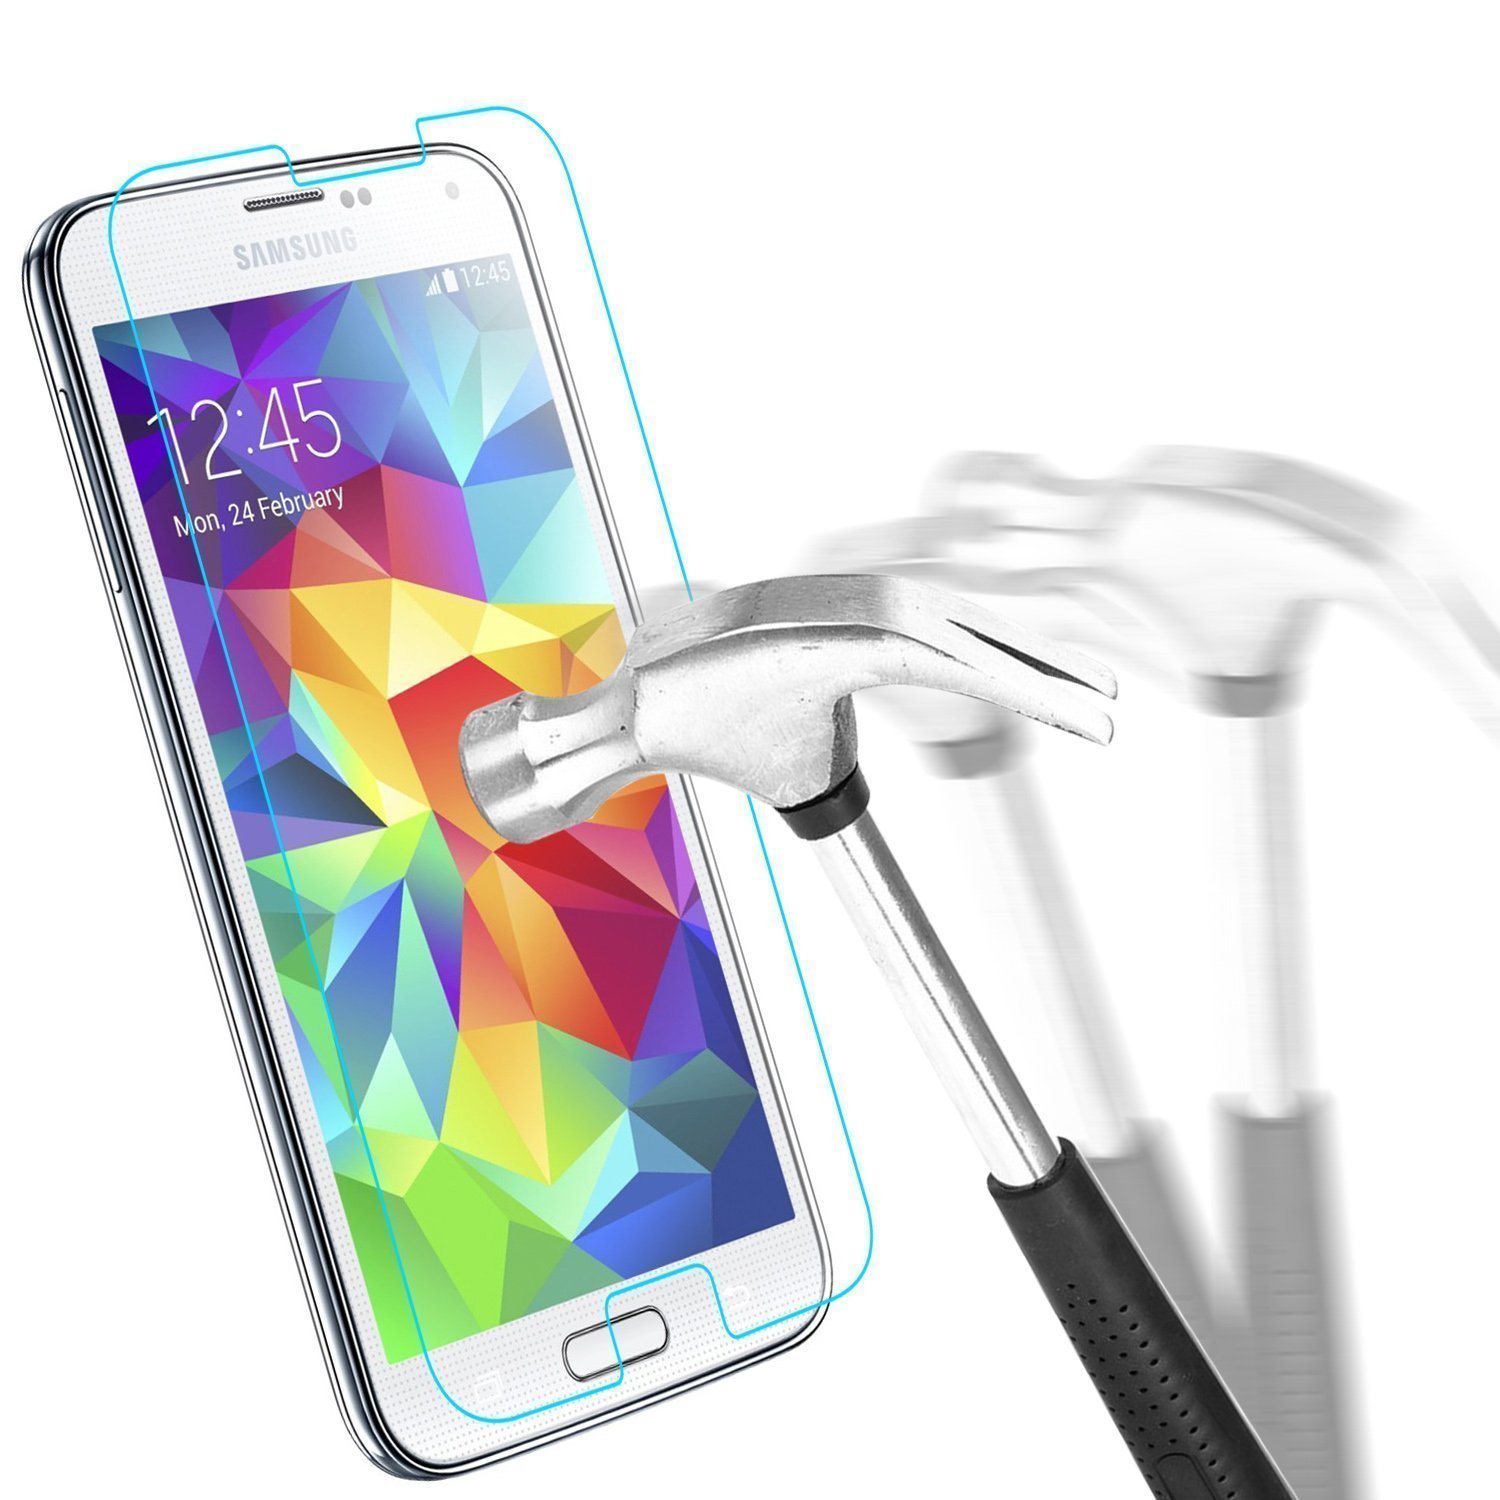 iJQ Samsung Galaxy Ace 3 Real Explosion Gorilla Tempered Glass Screen Protector And Screen Stylus Pen Amazon Electronics